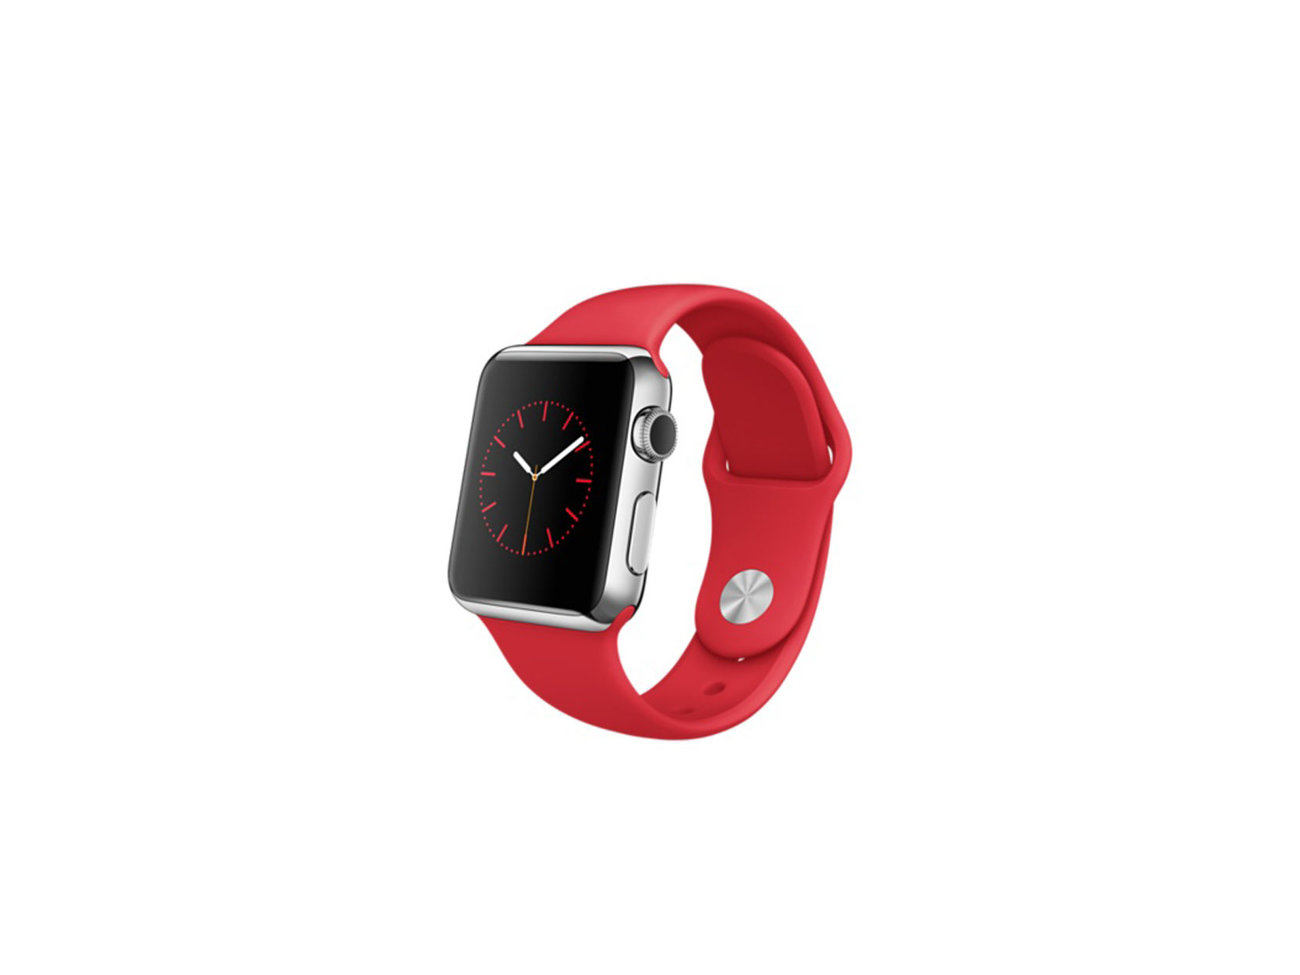 Give-Apple-Watch-Red-GG1115.jpg